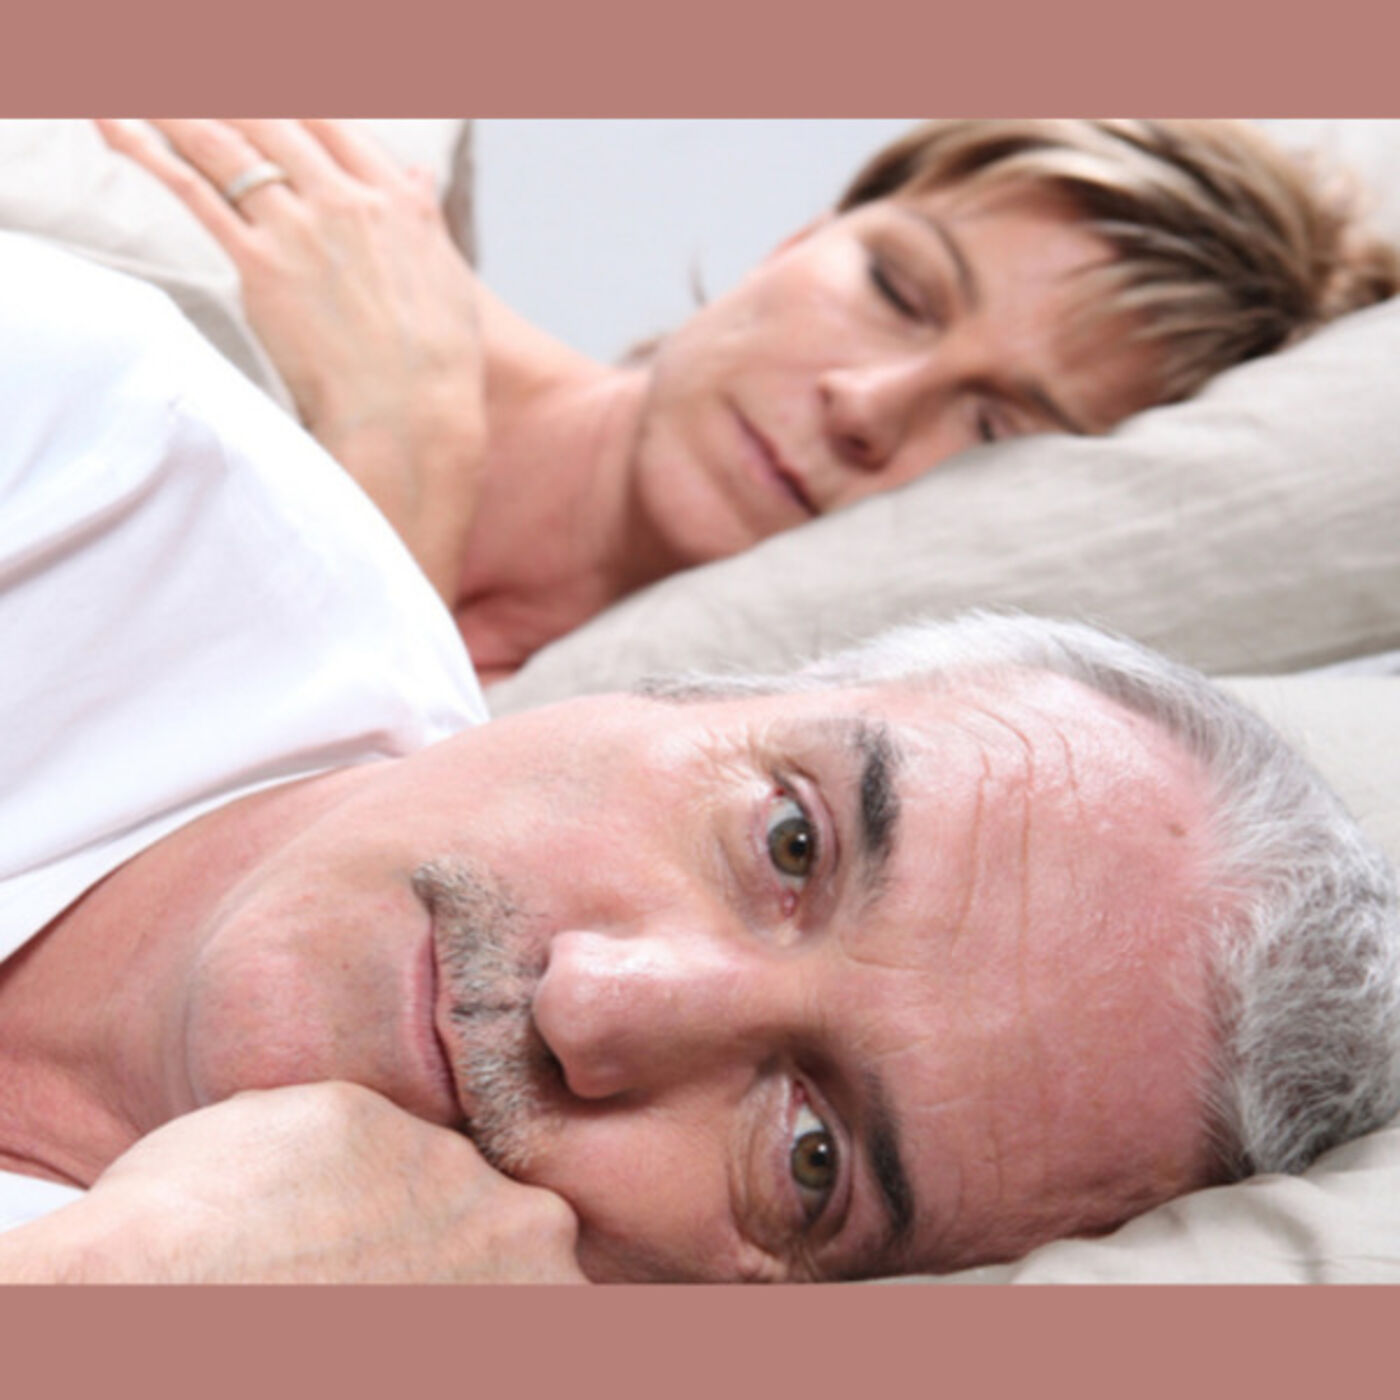 INSOMNIA - How to Get Better Sleep